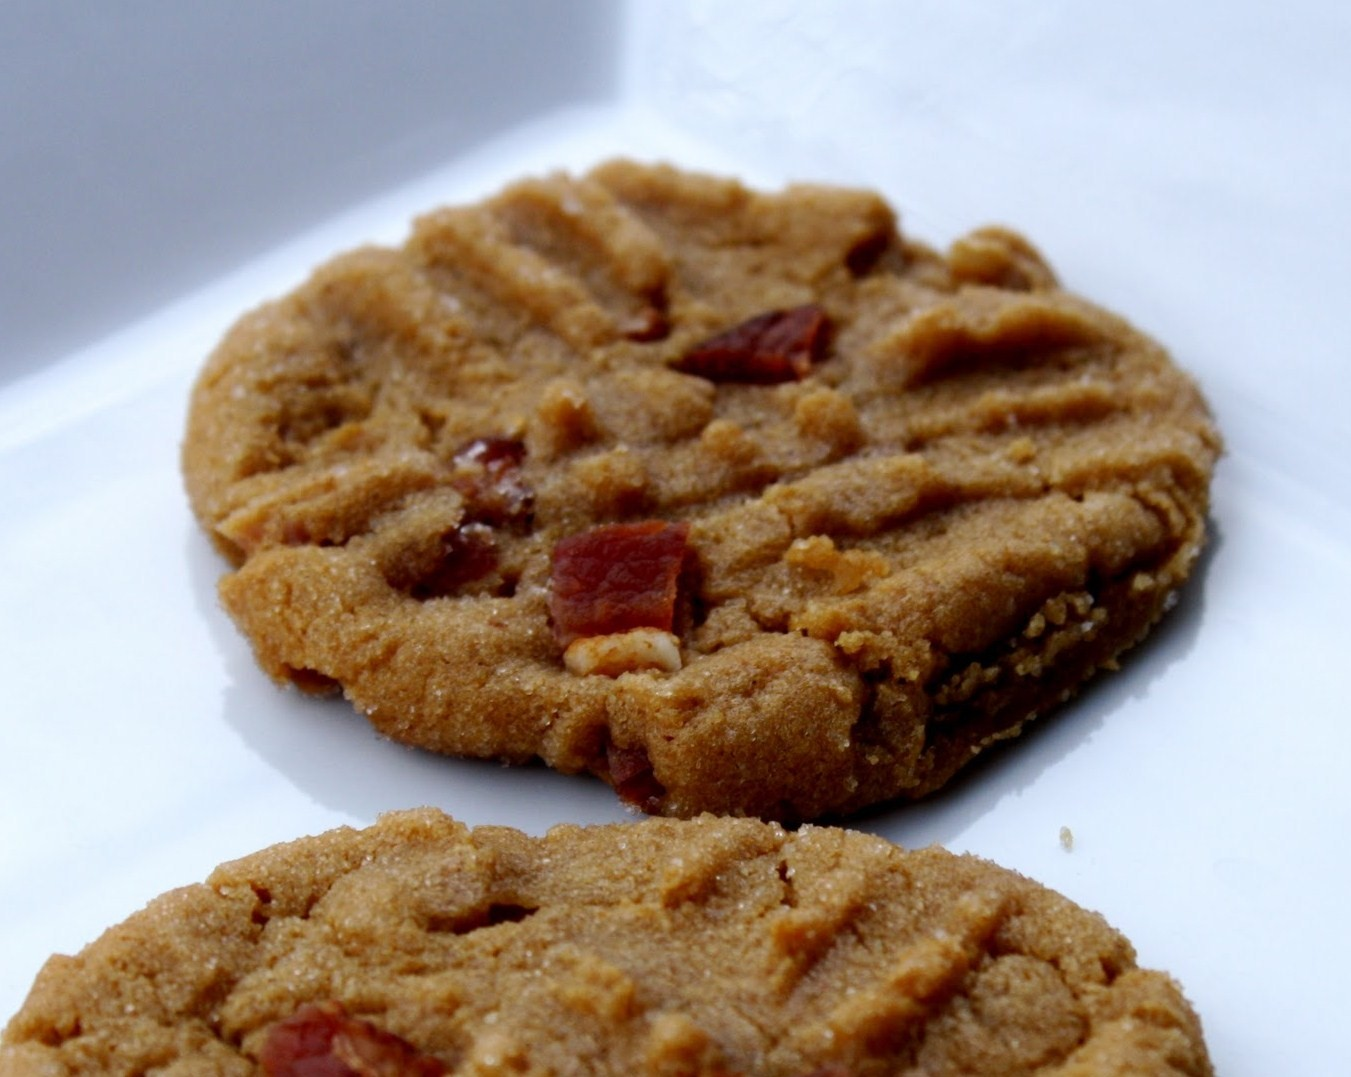 ... flavors makes these Bacon and Peanut Butter Cookies a must try treats